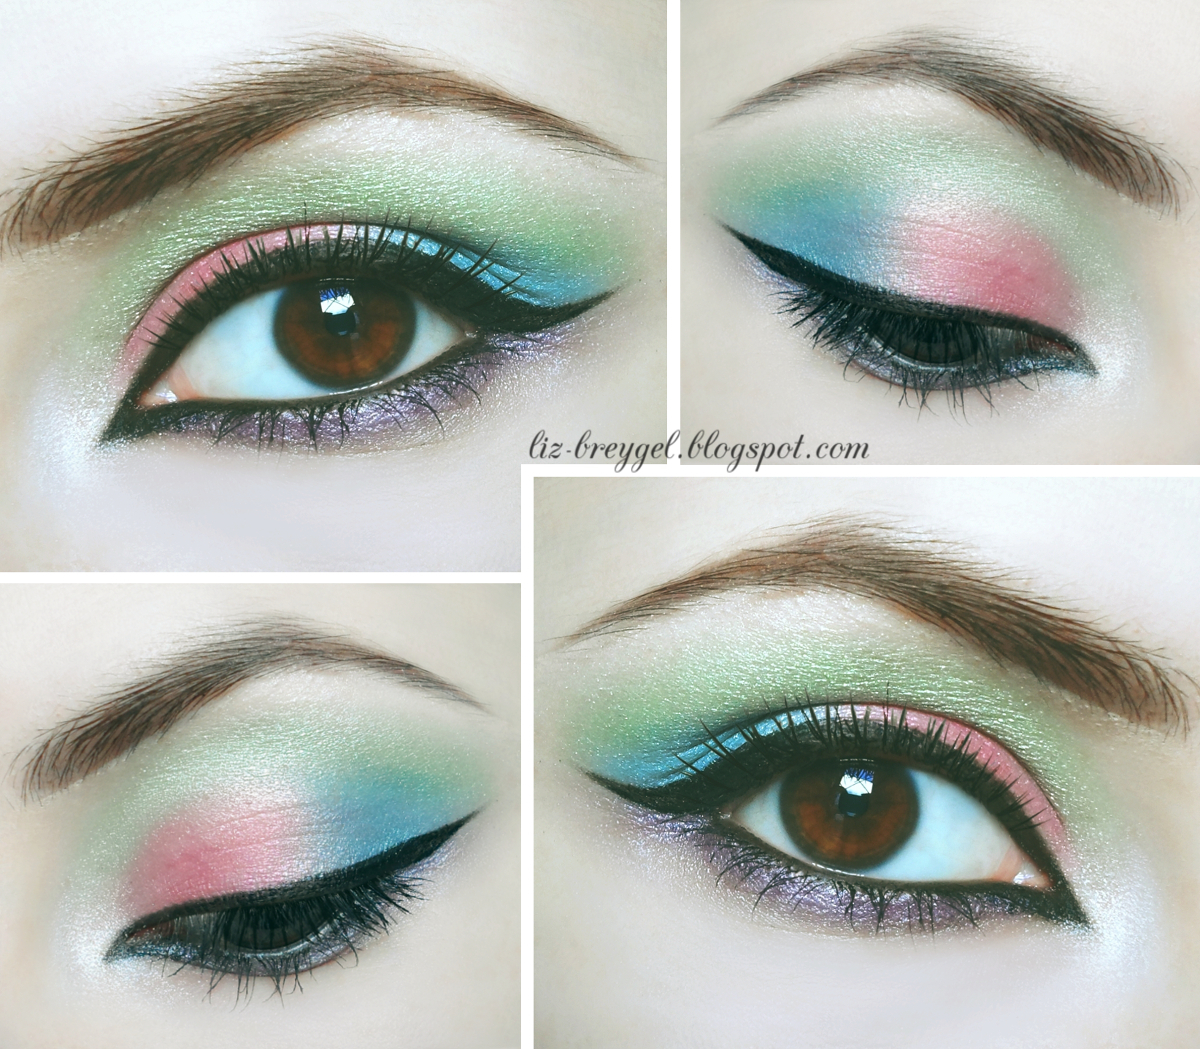 colorful makeup tutorial liz breygel beauty angel beauty uk cosmetics makeup